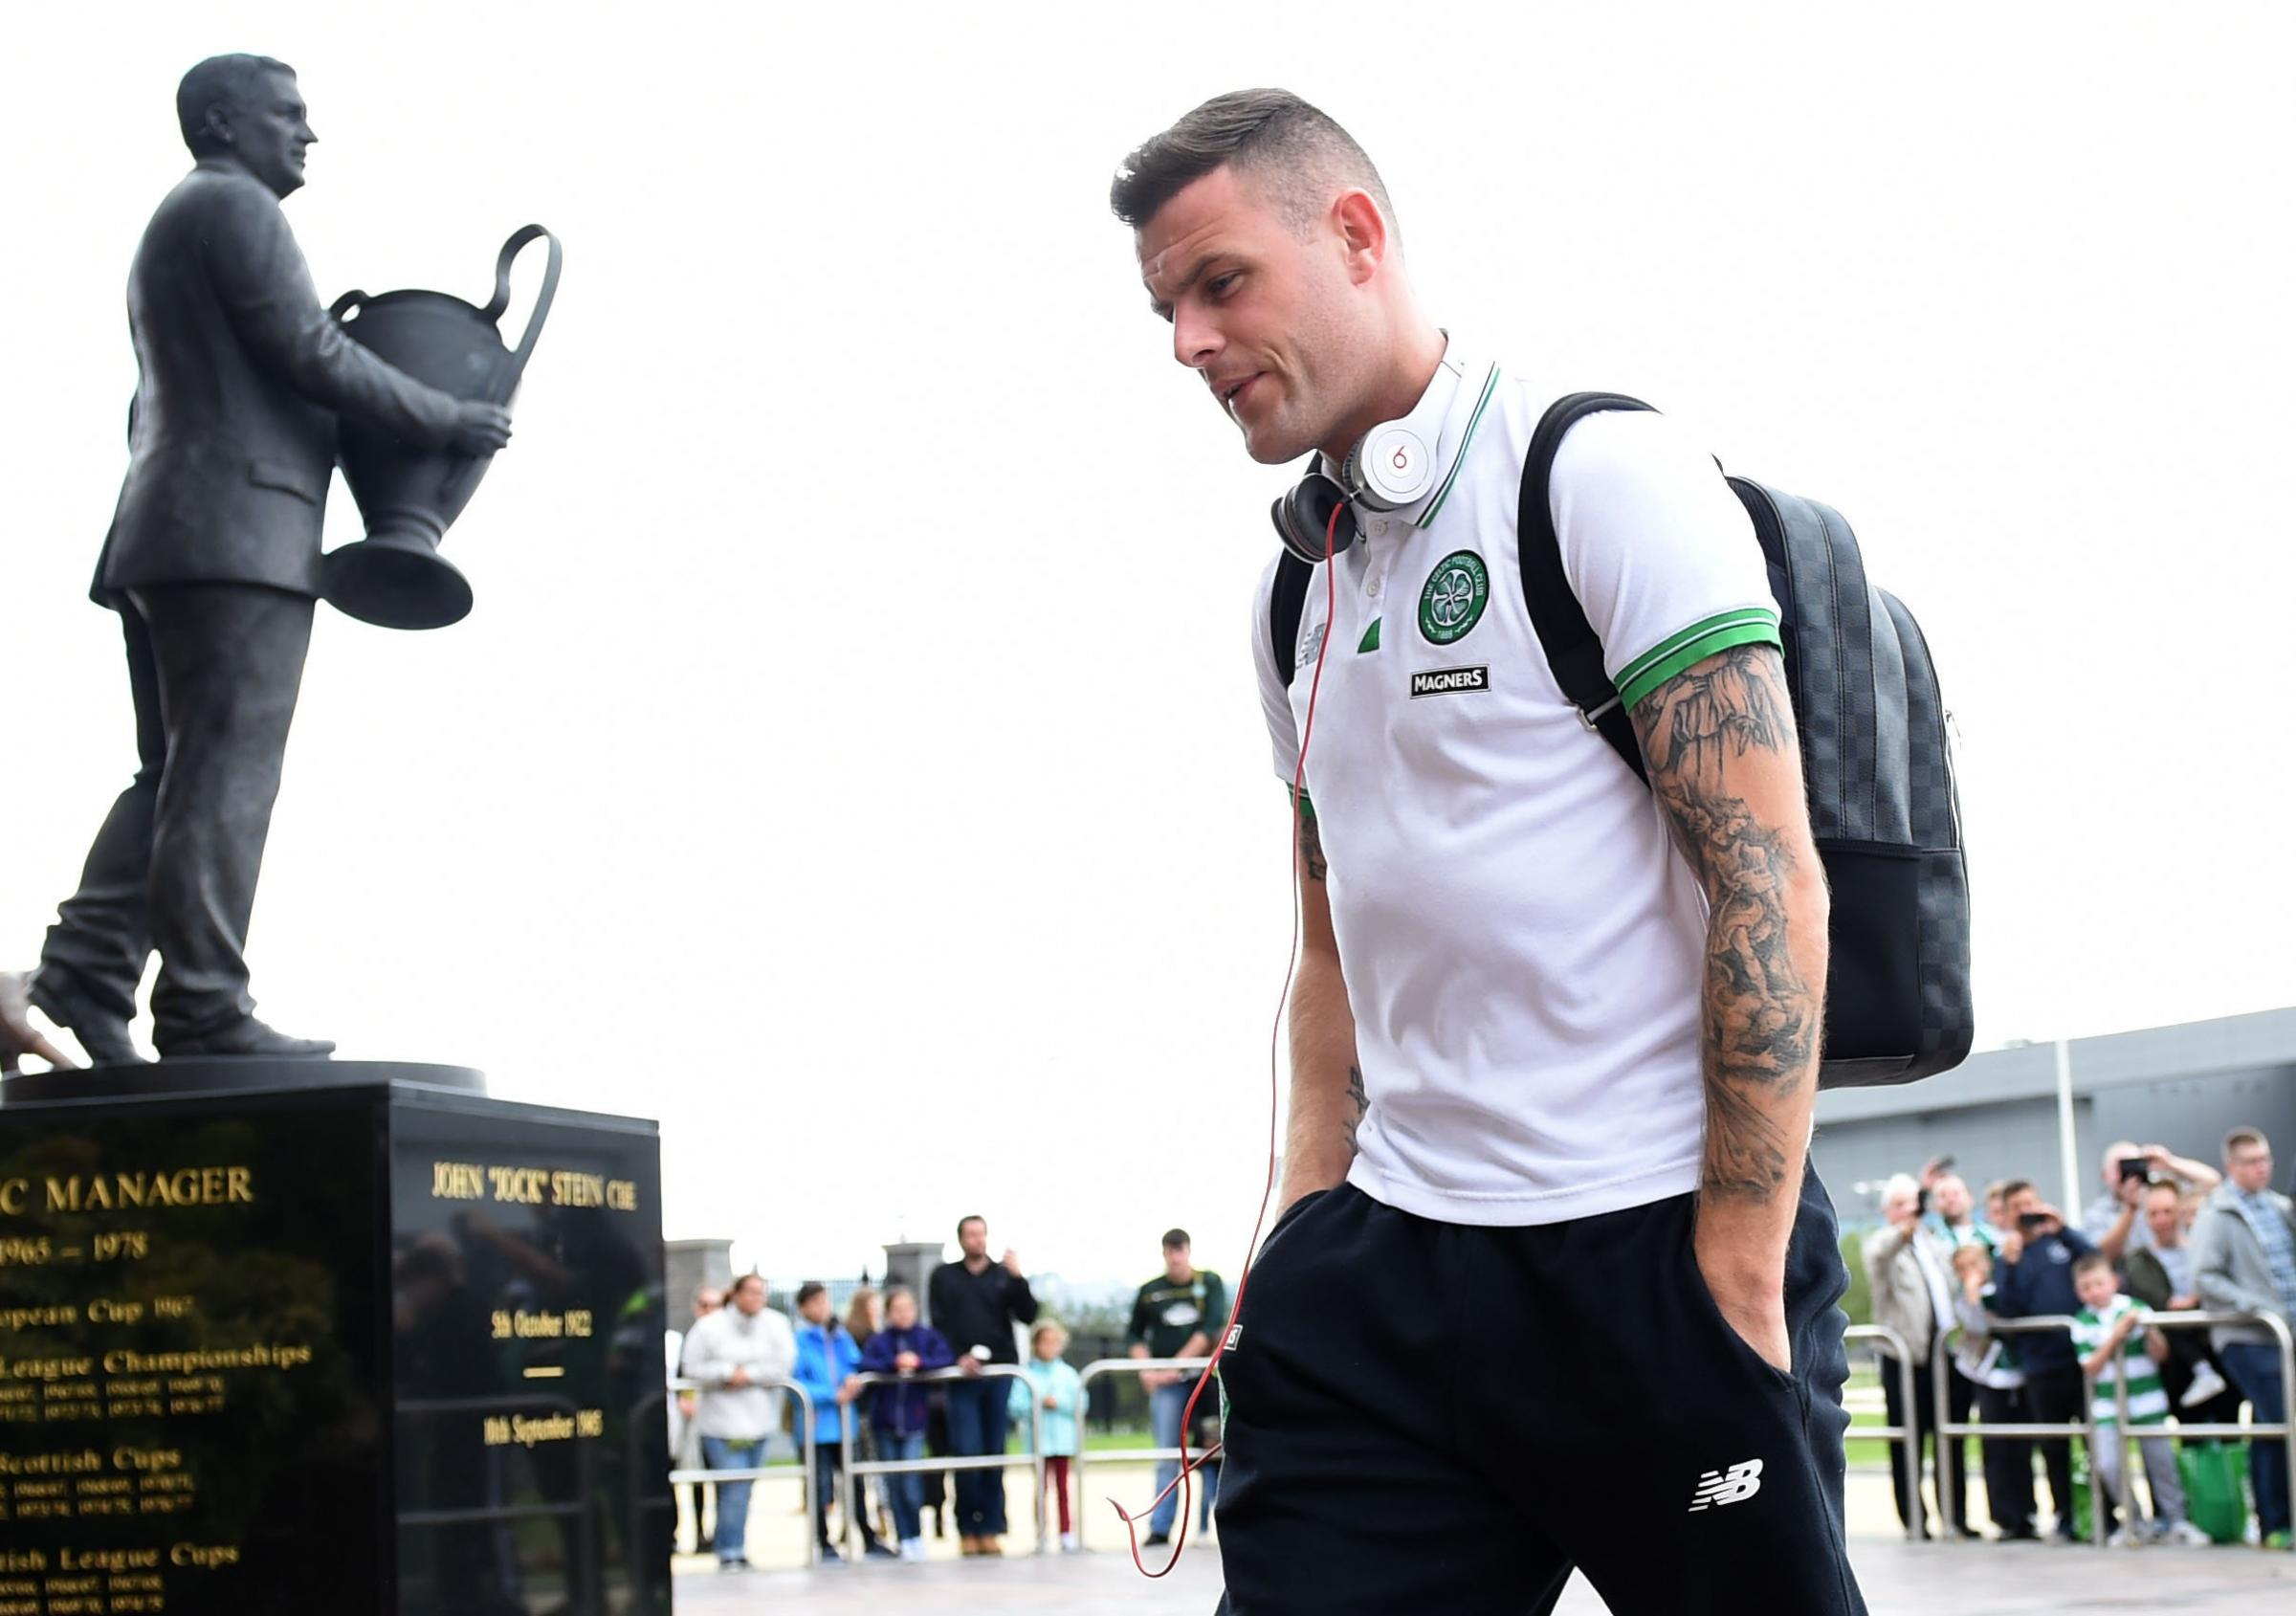 29/08/15 LADBROKES PREMIERSHIP . CELTIC v ST JOHNSTONE (3-1) . CELTIC PARK - GLASGOW . Celtic's Anthony Stokes, a transfer target for Cardiff City, arrives at the stadium. (36980593)